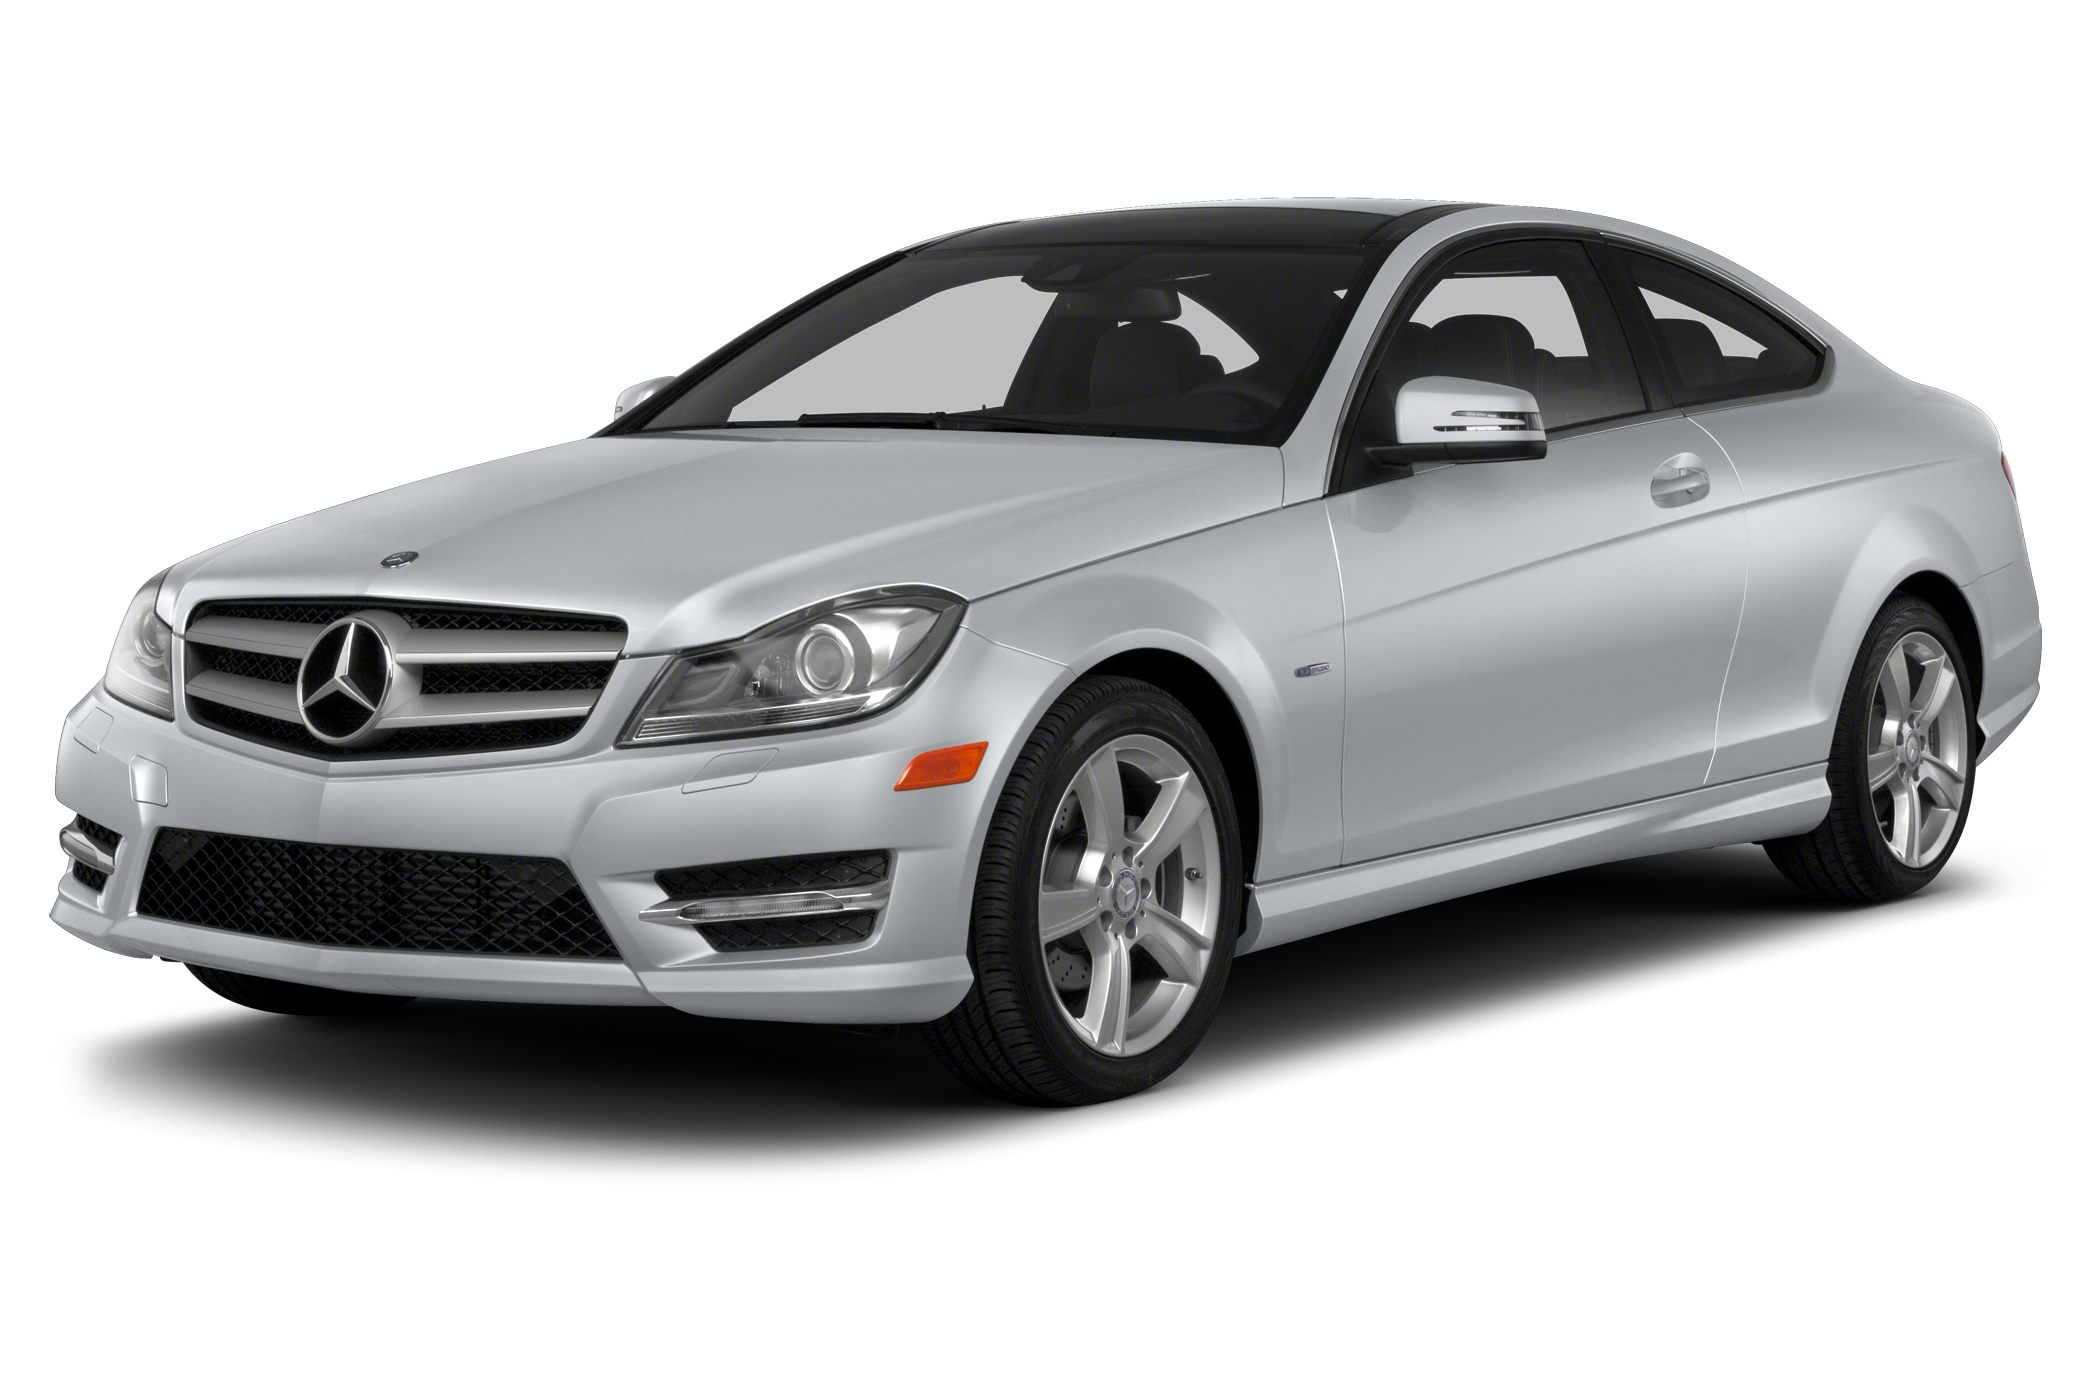 2013 MERCEDES C-Class C250 Want to save some money Get the NEW look for the used price on this on